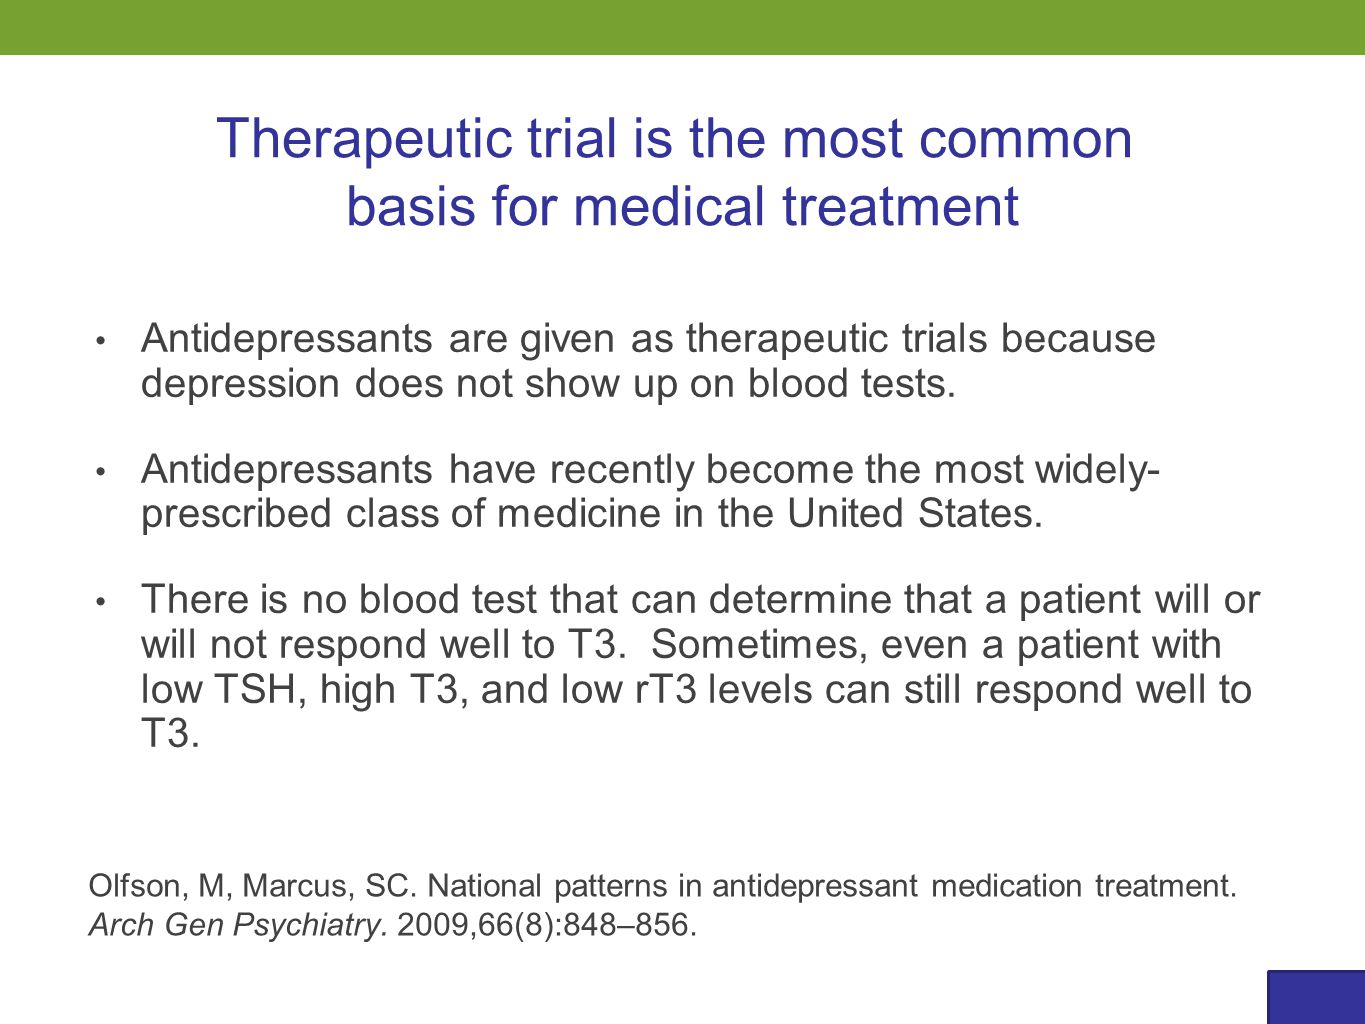 Antidepressants are given as therapeutic trials because depression does not show up on blood tests.